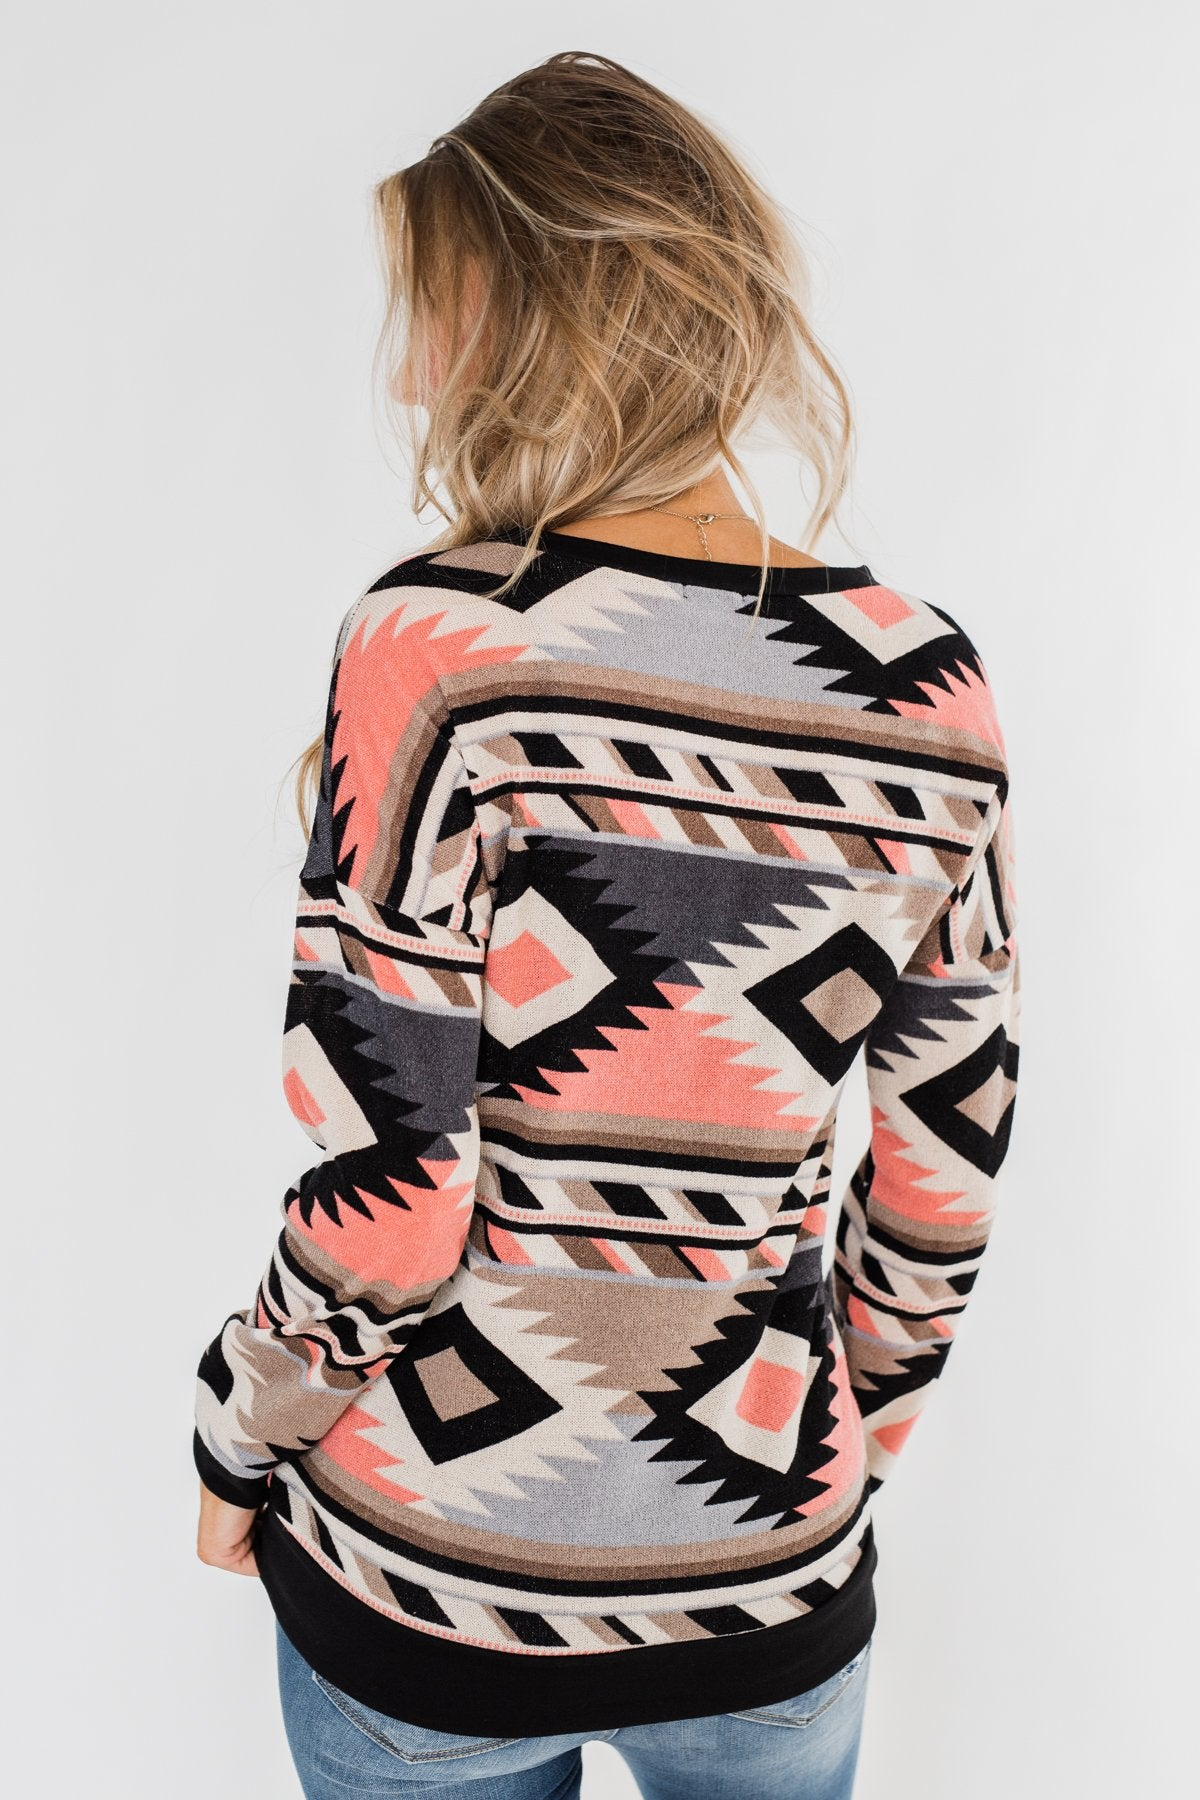 By The Bonfire Aztec Sweater- Black & Cream